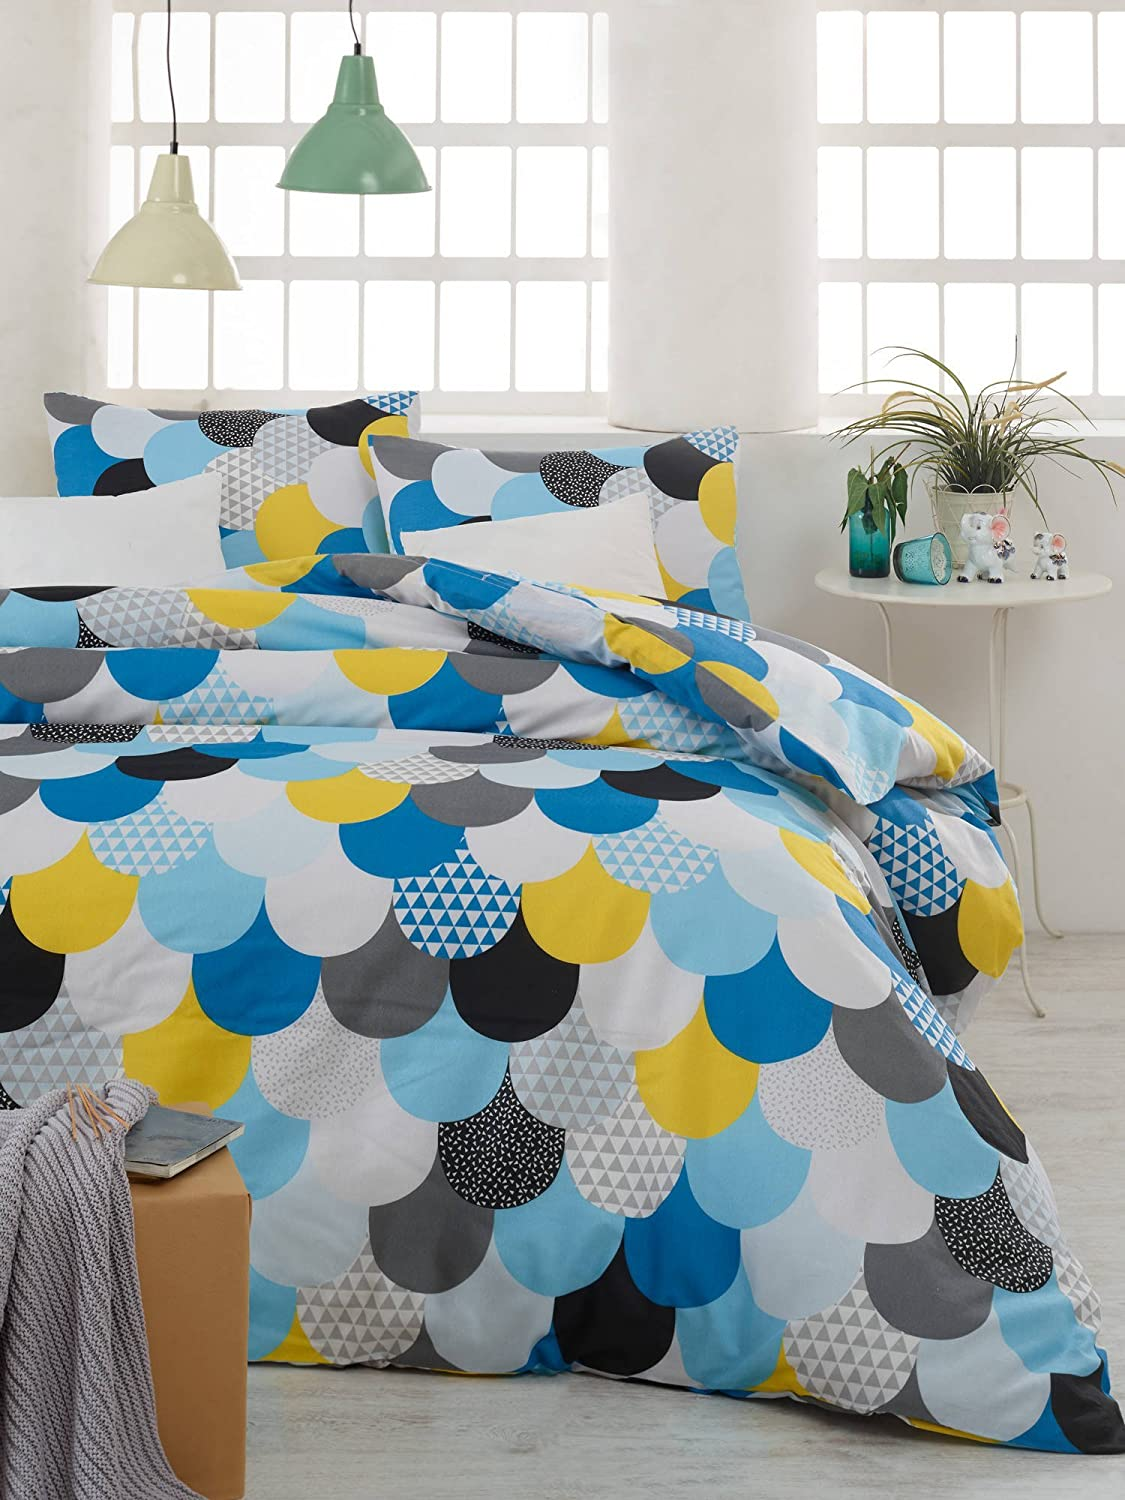 Colorful Dots and Triangle Motif on Circles LaModaHome Shapes Duvet Cover Set Set of 4 Yellow 65/% Cotton 35/% Polyester Blue Flat Sheet and 2 Pillowcases for Full Bed 143EPJ1608 Duvet Cover White